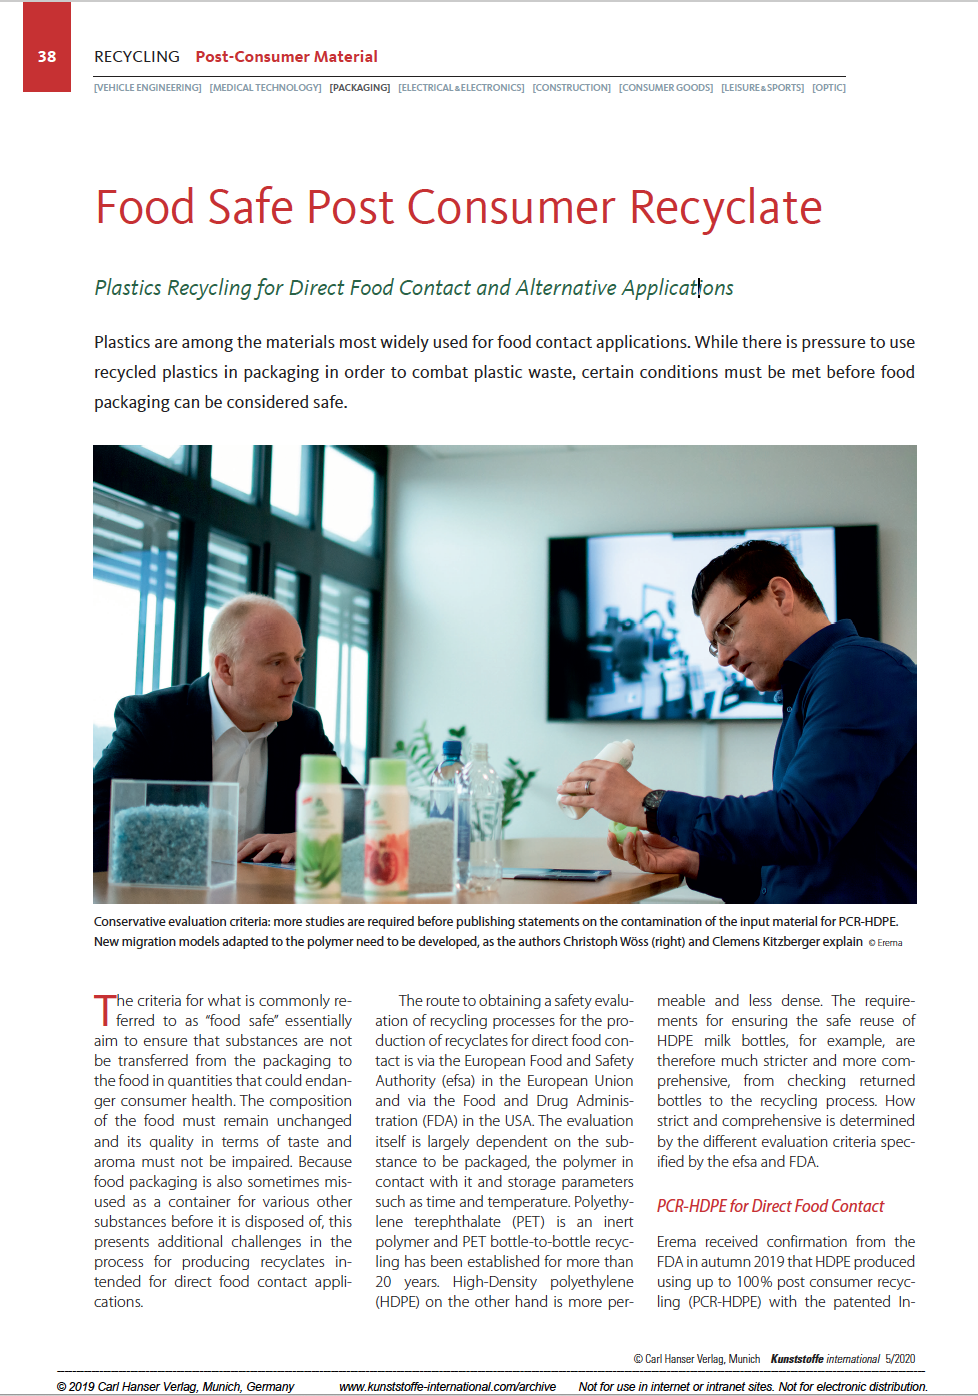 Kunststoffe International - Food Safe Post Consumer Recycling